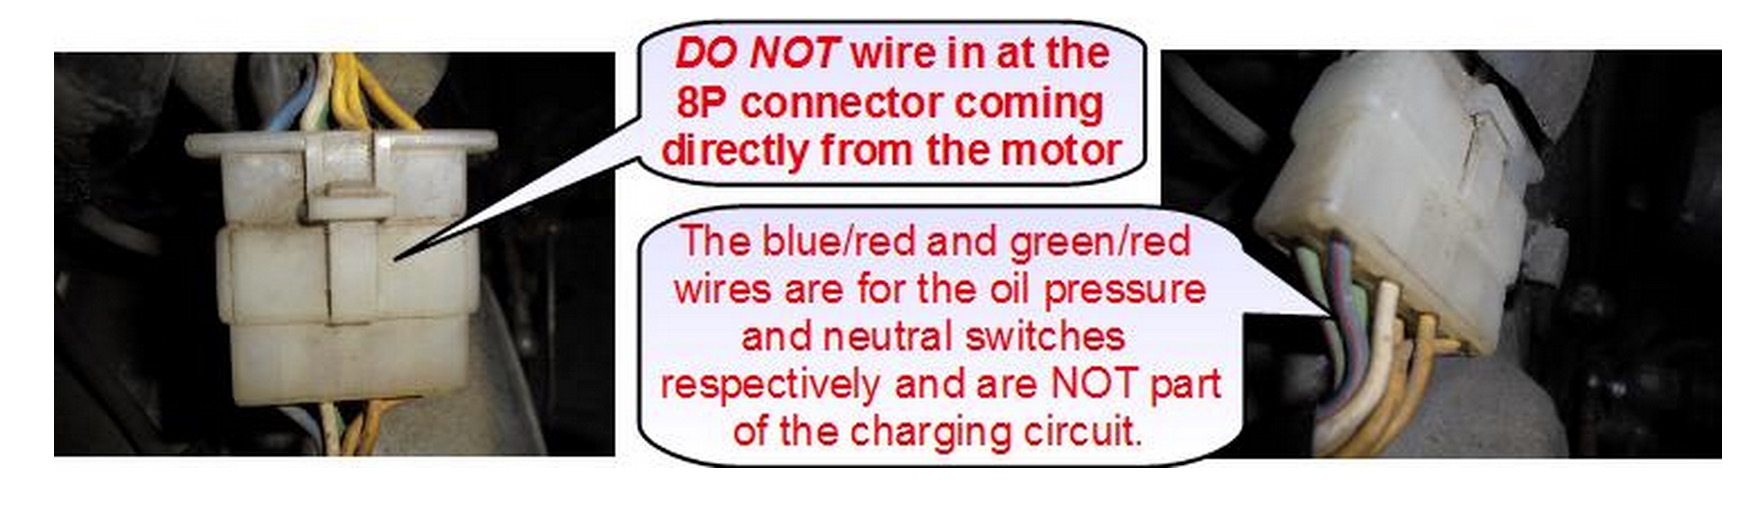 Aftermarket Honda Regulator Rectifier Oem Style Replacement Part Wiring Harness Pins Wires That Originally Were Going To The Tabs On Oe Color Code Remains Same 10 100 Plugs Into At